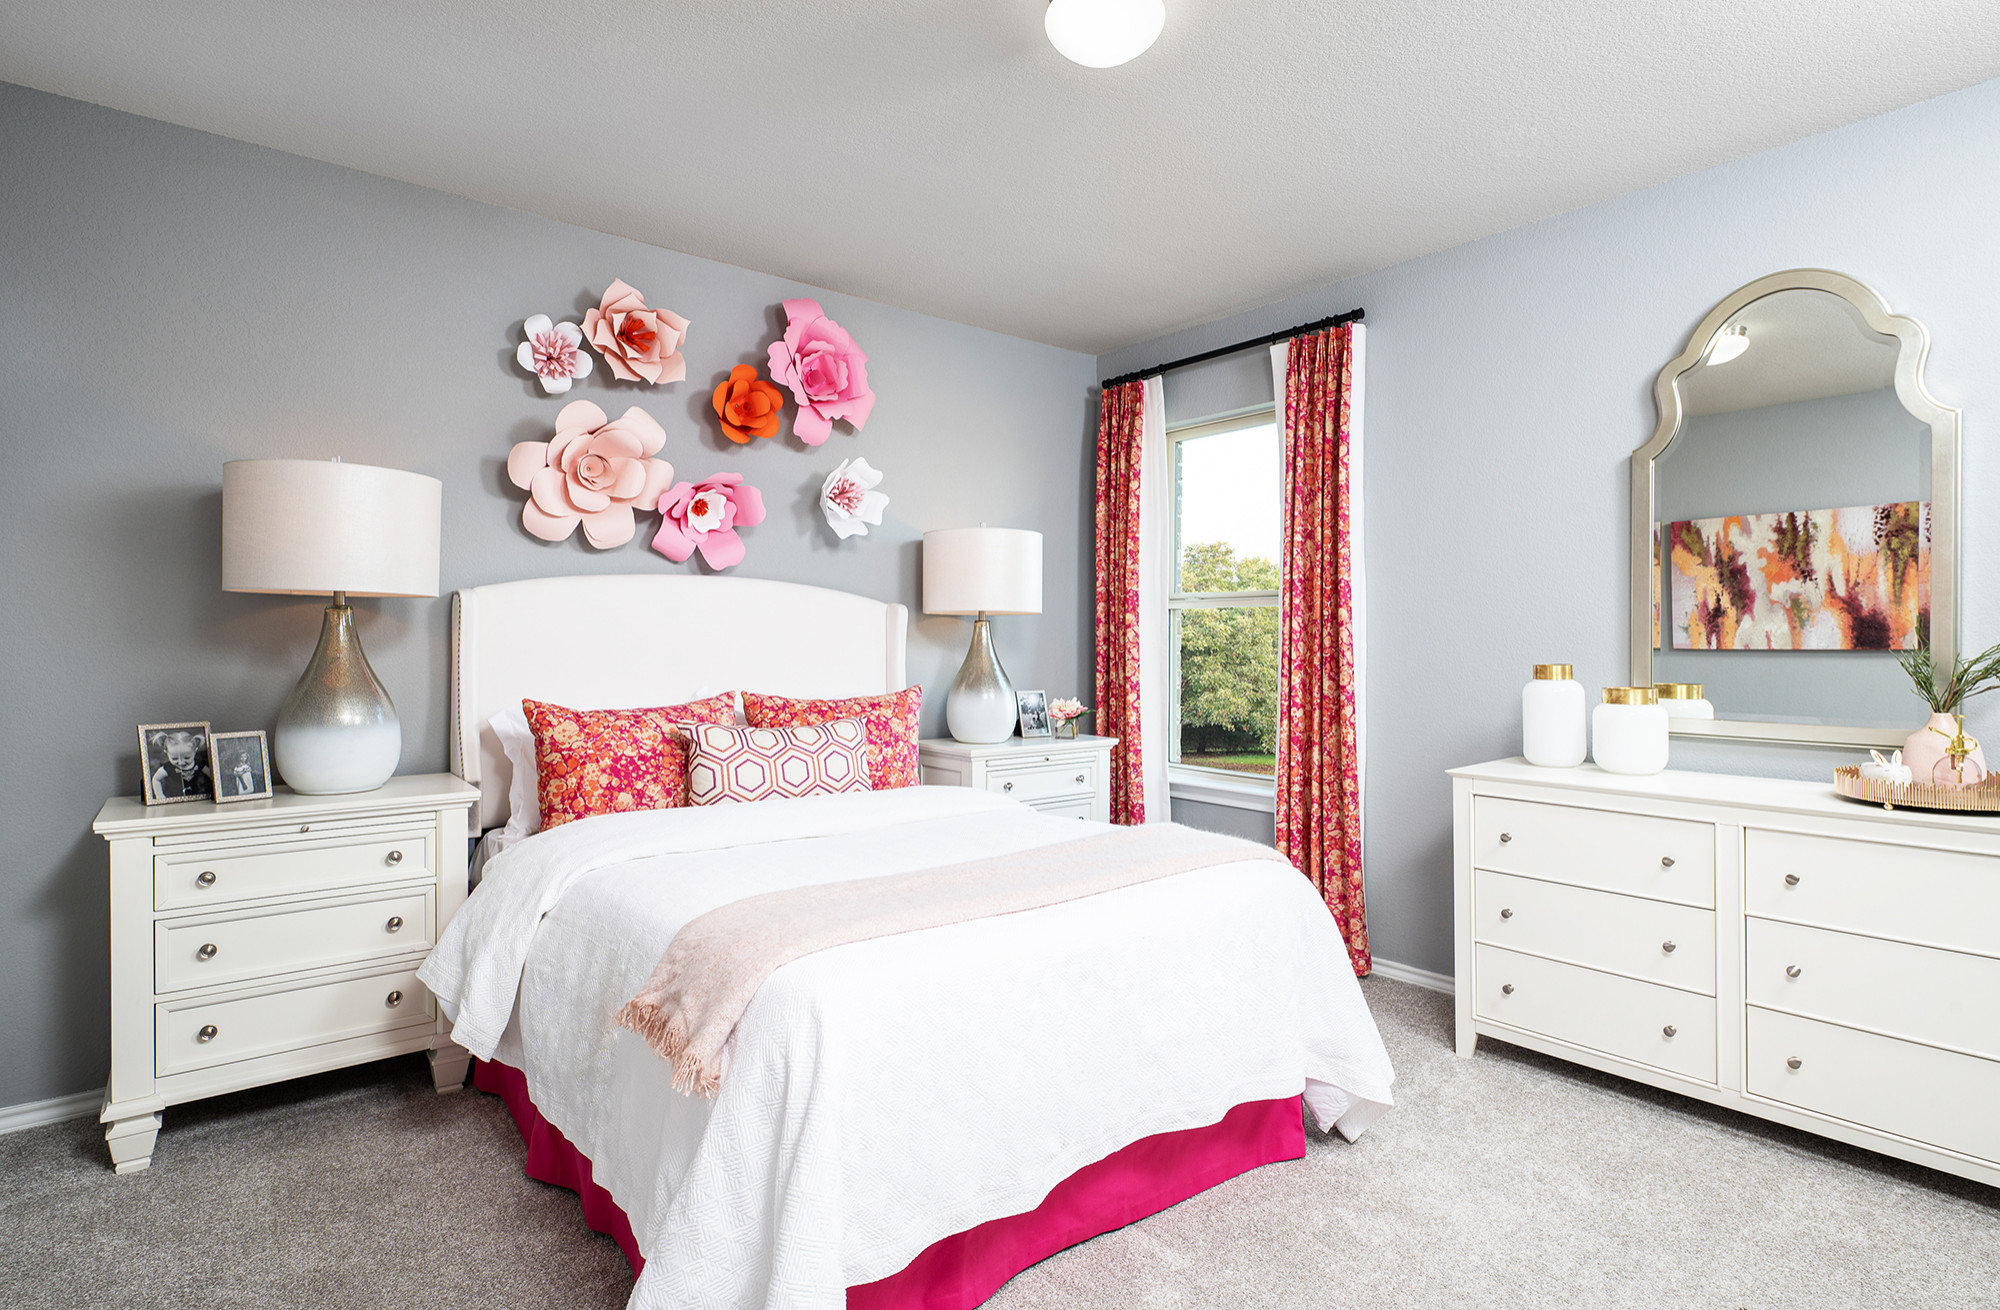 75 Beautiful White Bedroom Pictures Ideas February 2021 Houzz